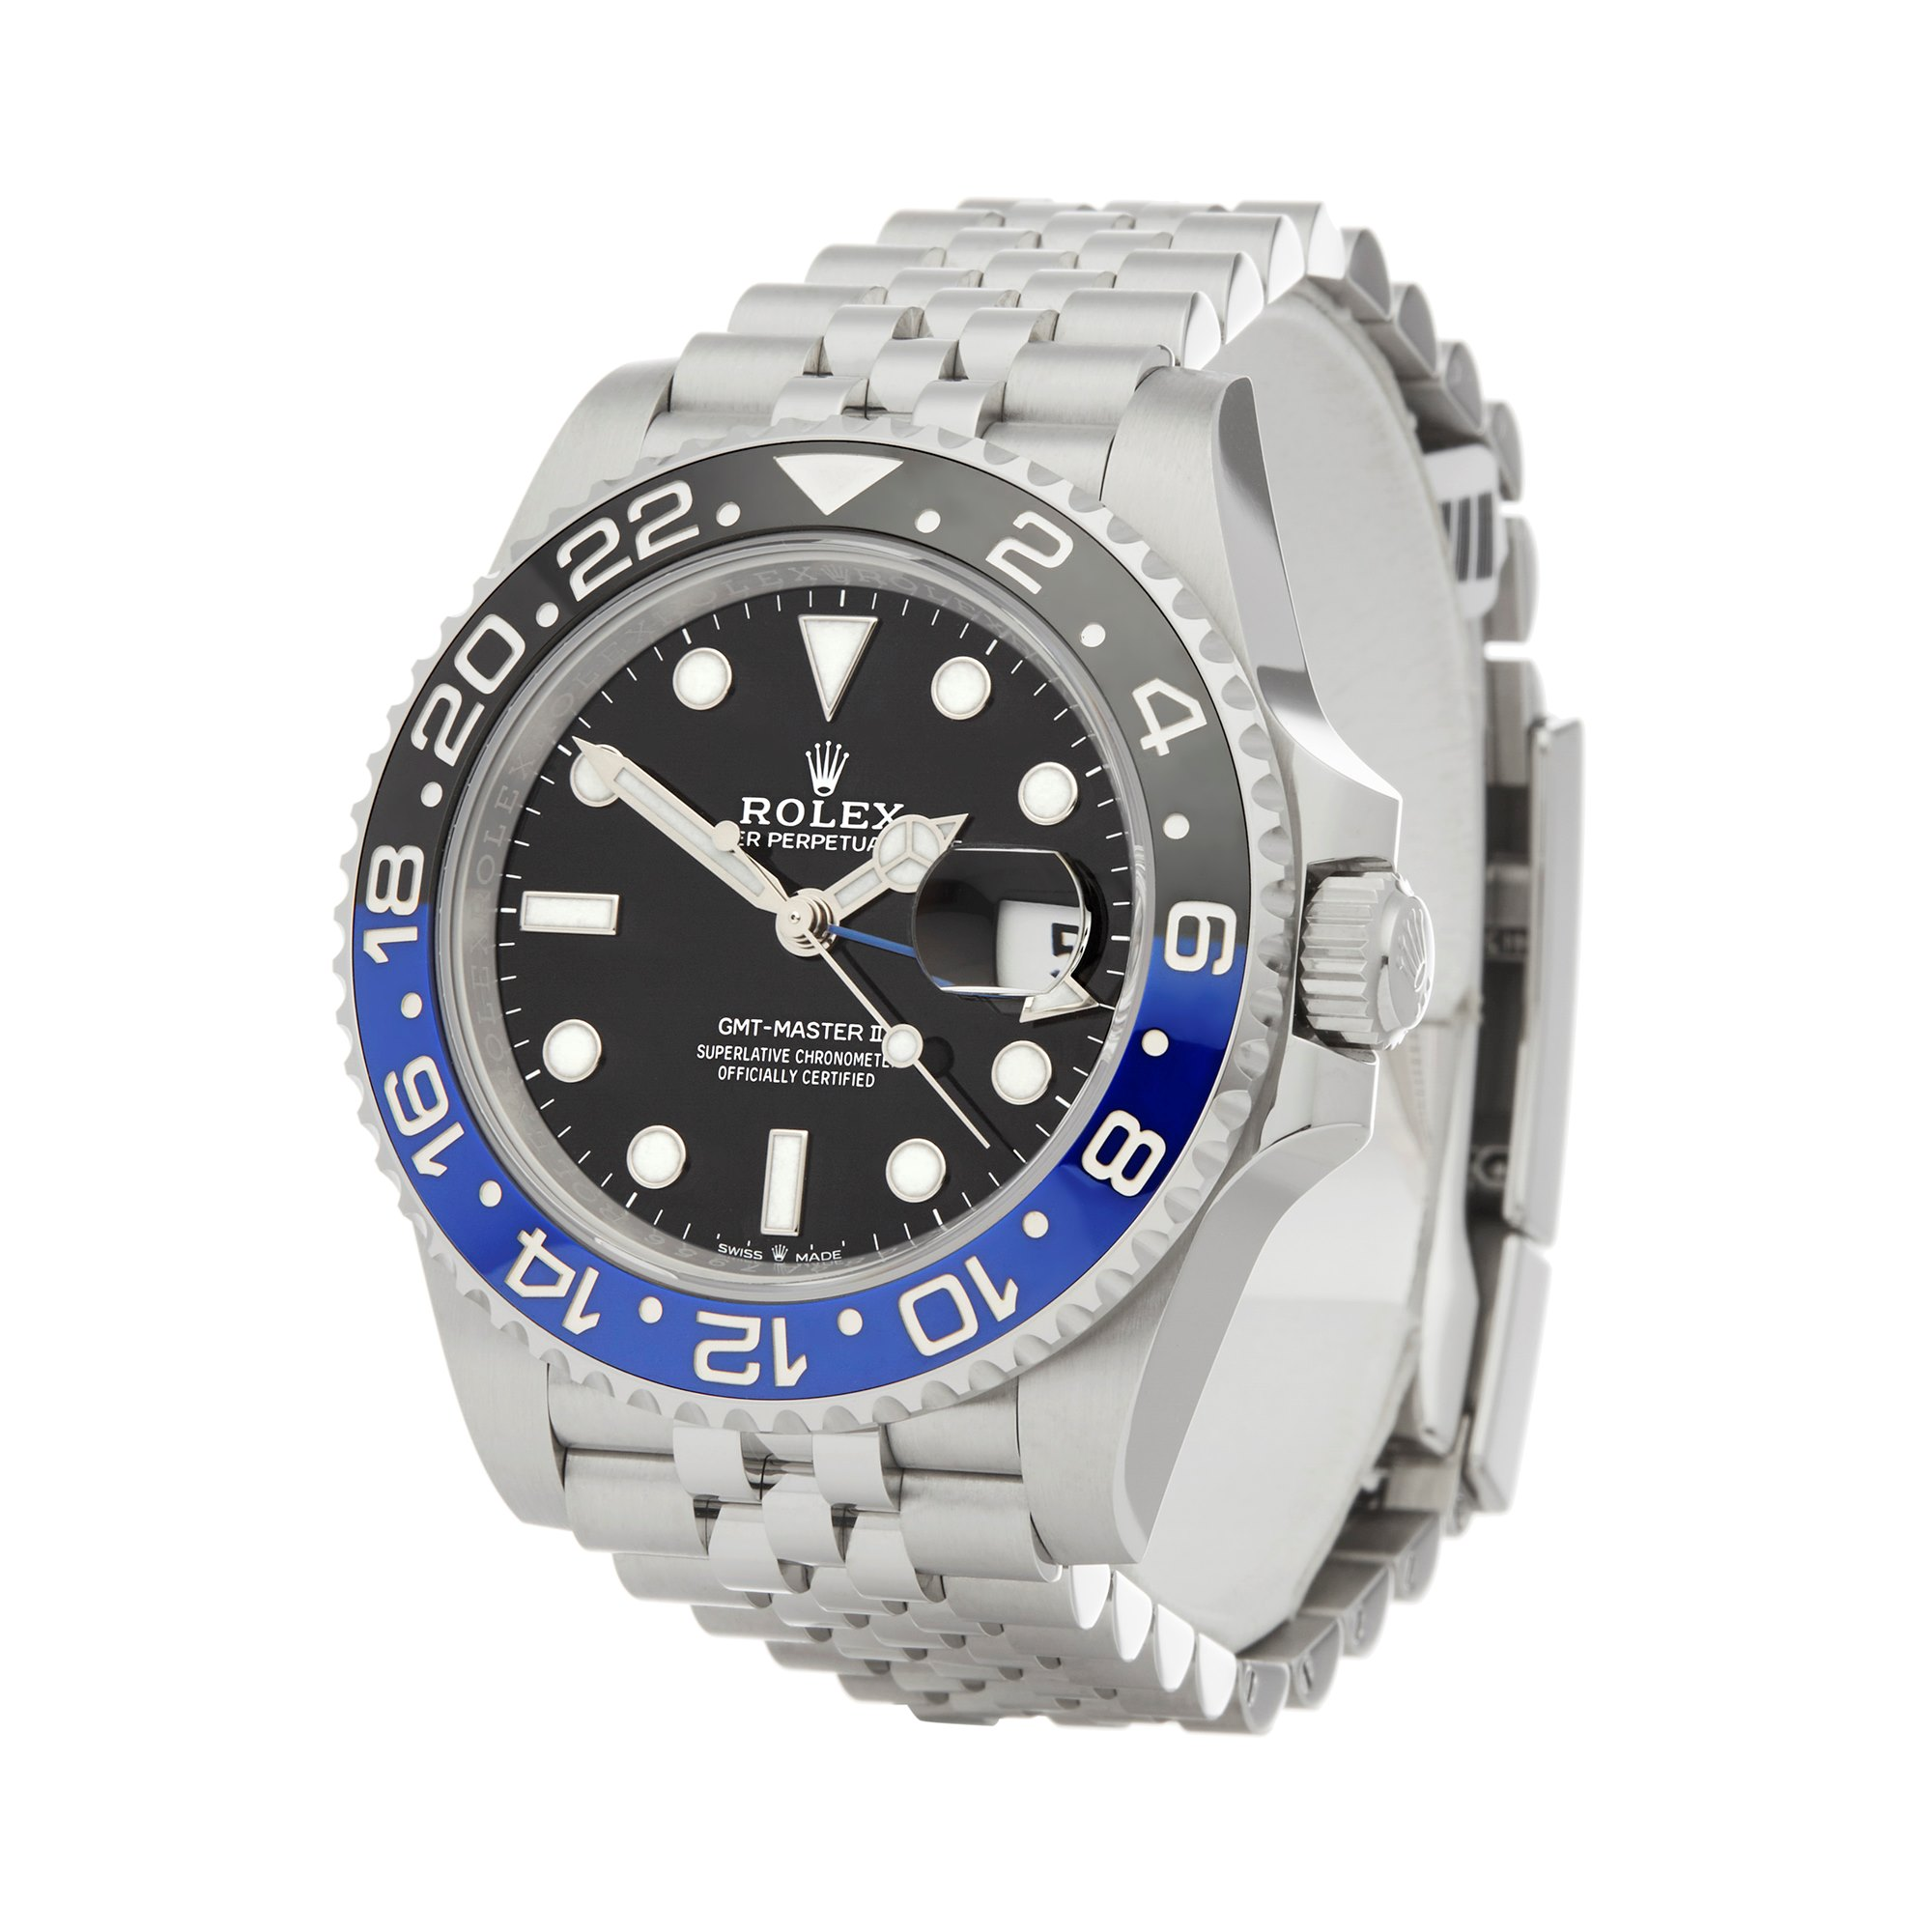 Rolex GMT-Master II Batman Stainless Steel 126710BLNR